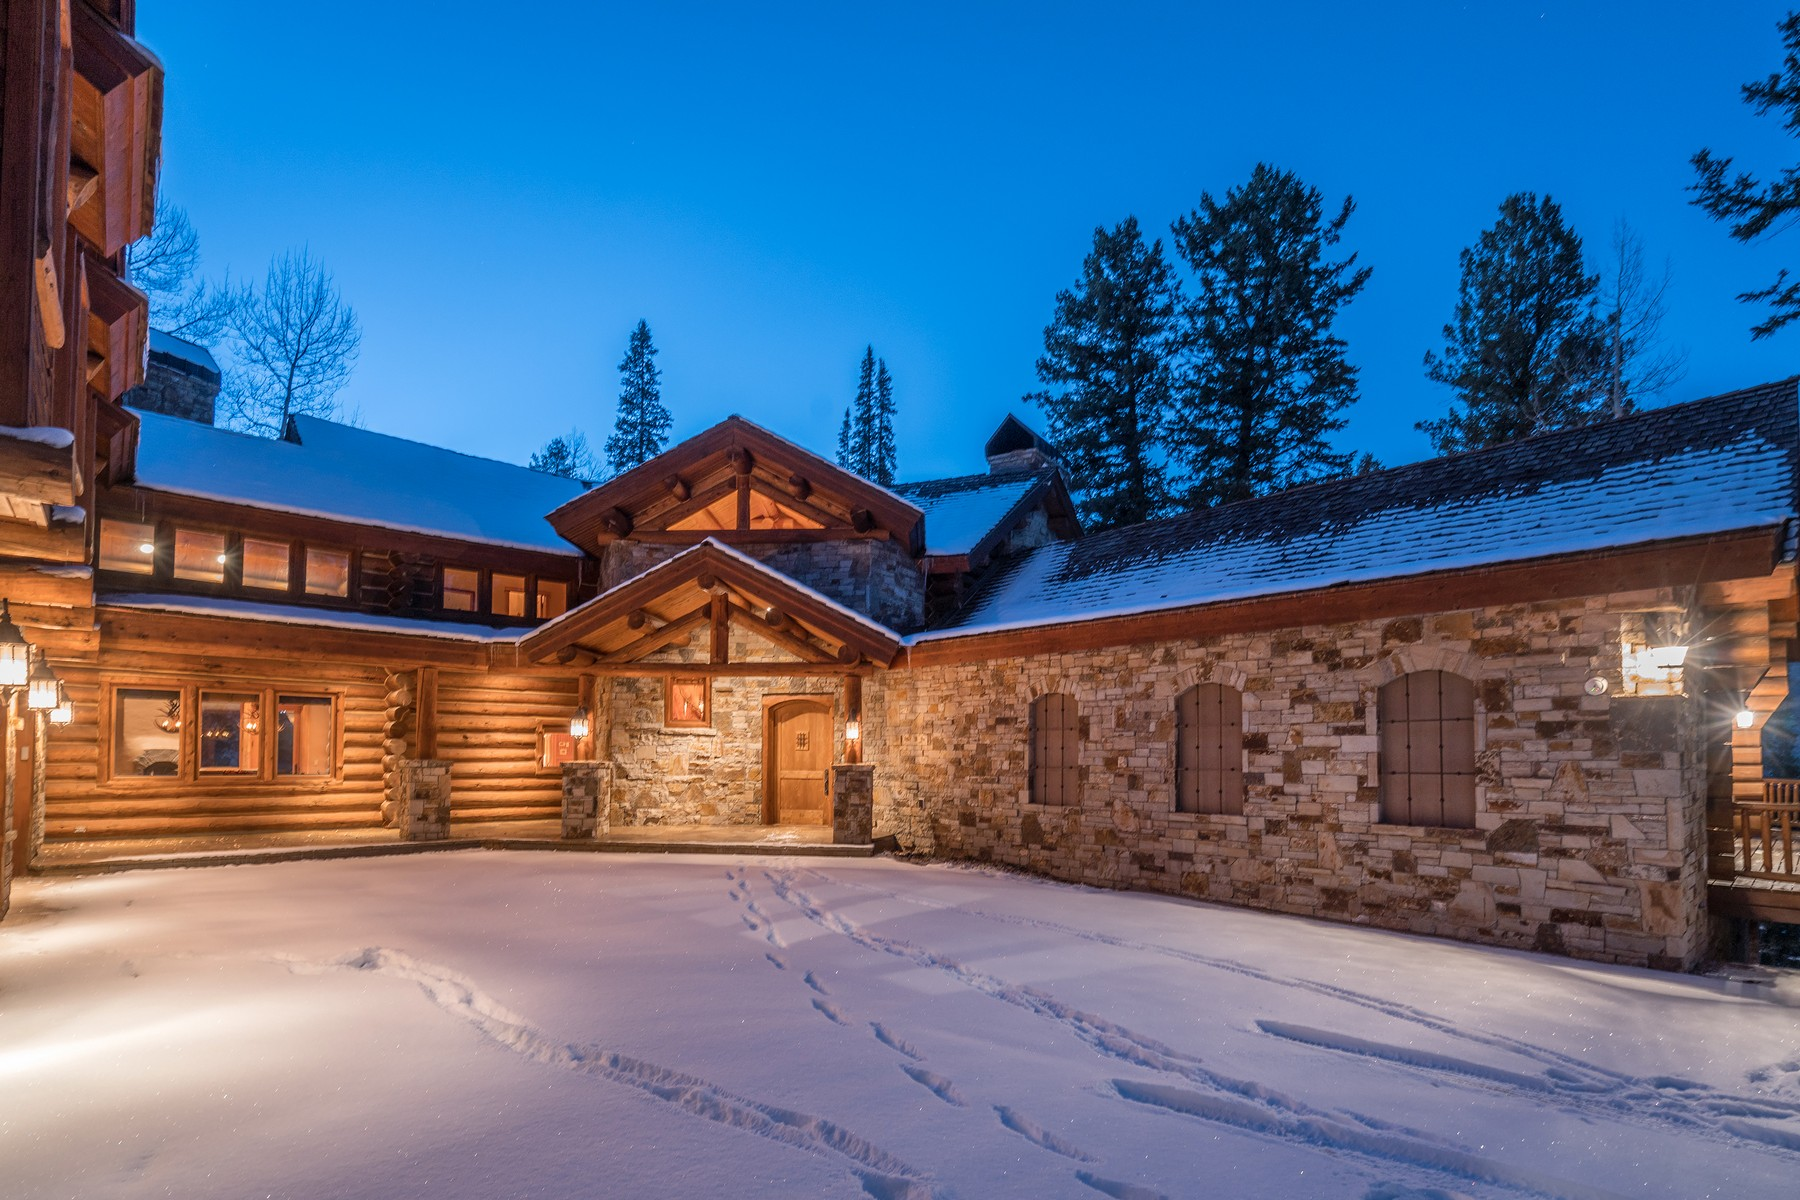 Maison unifamiliale pour l Vente à 130 Highlands Way Telluride, Colorado, 81435 États-Unis